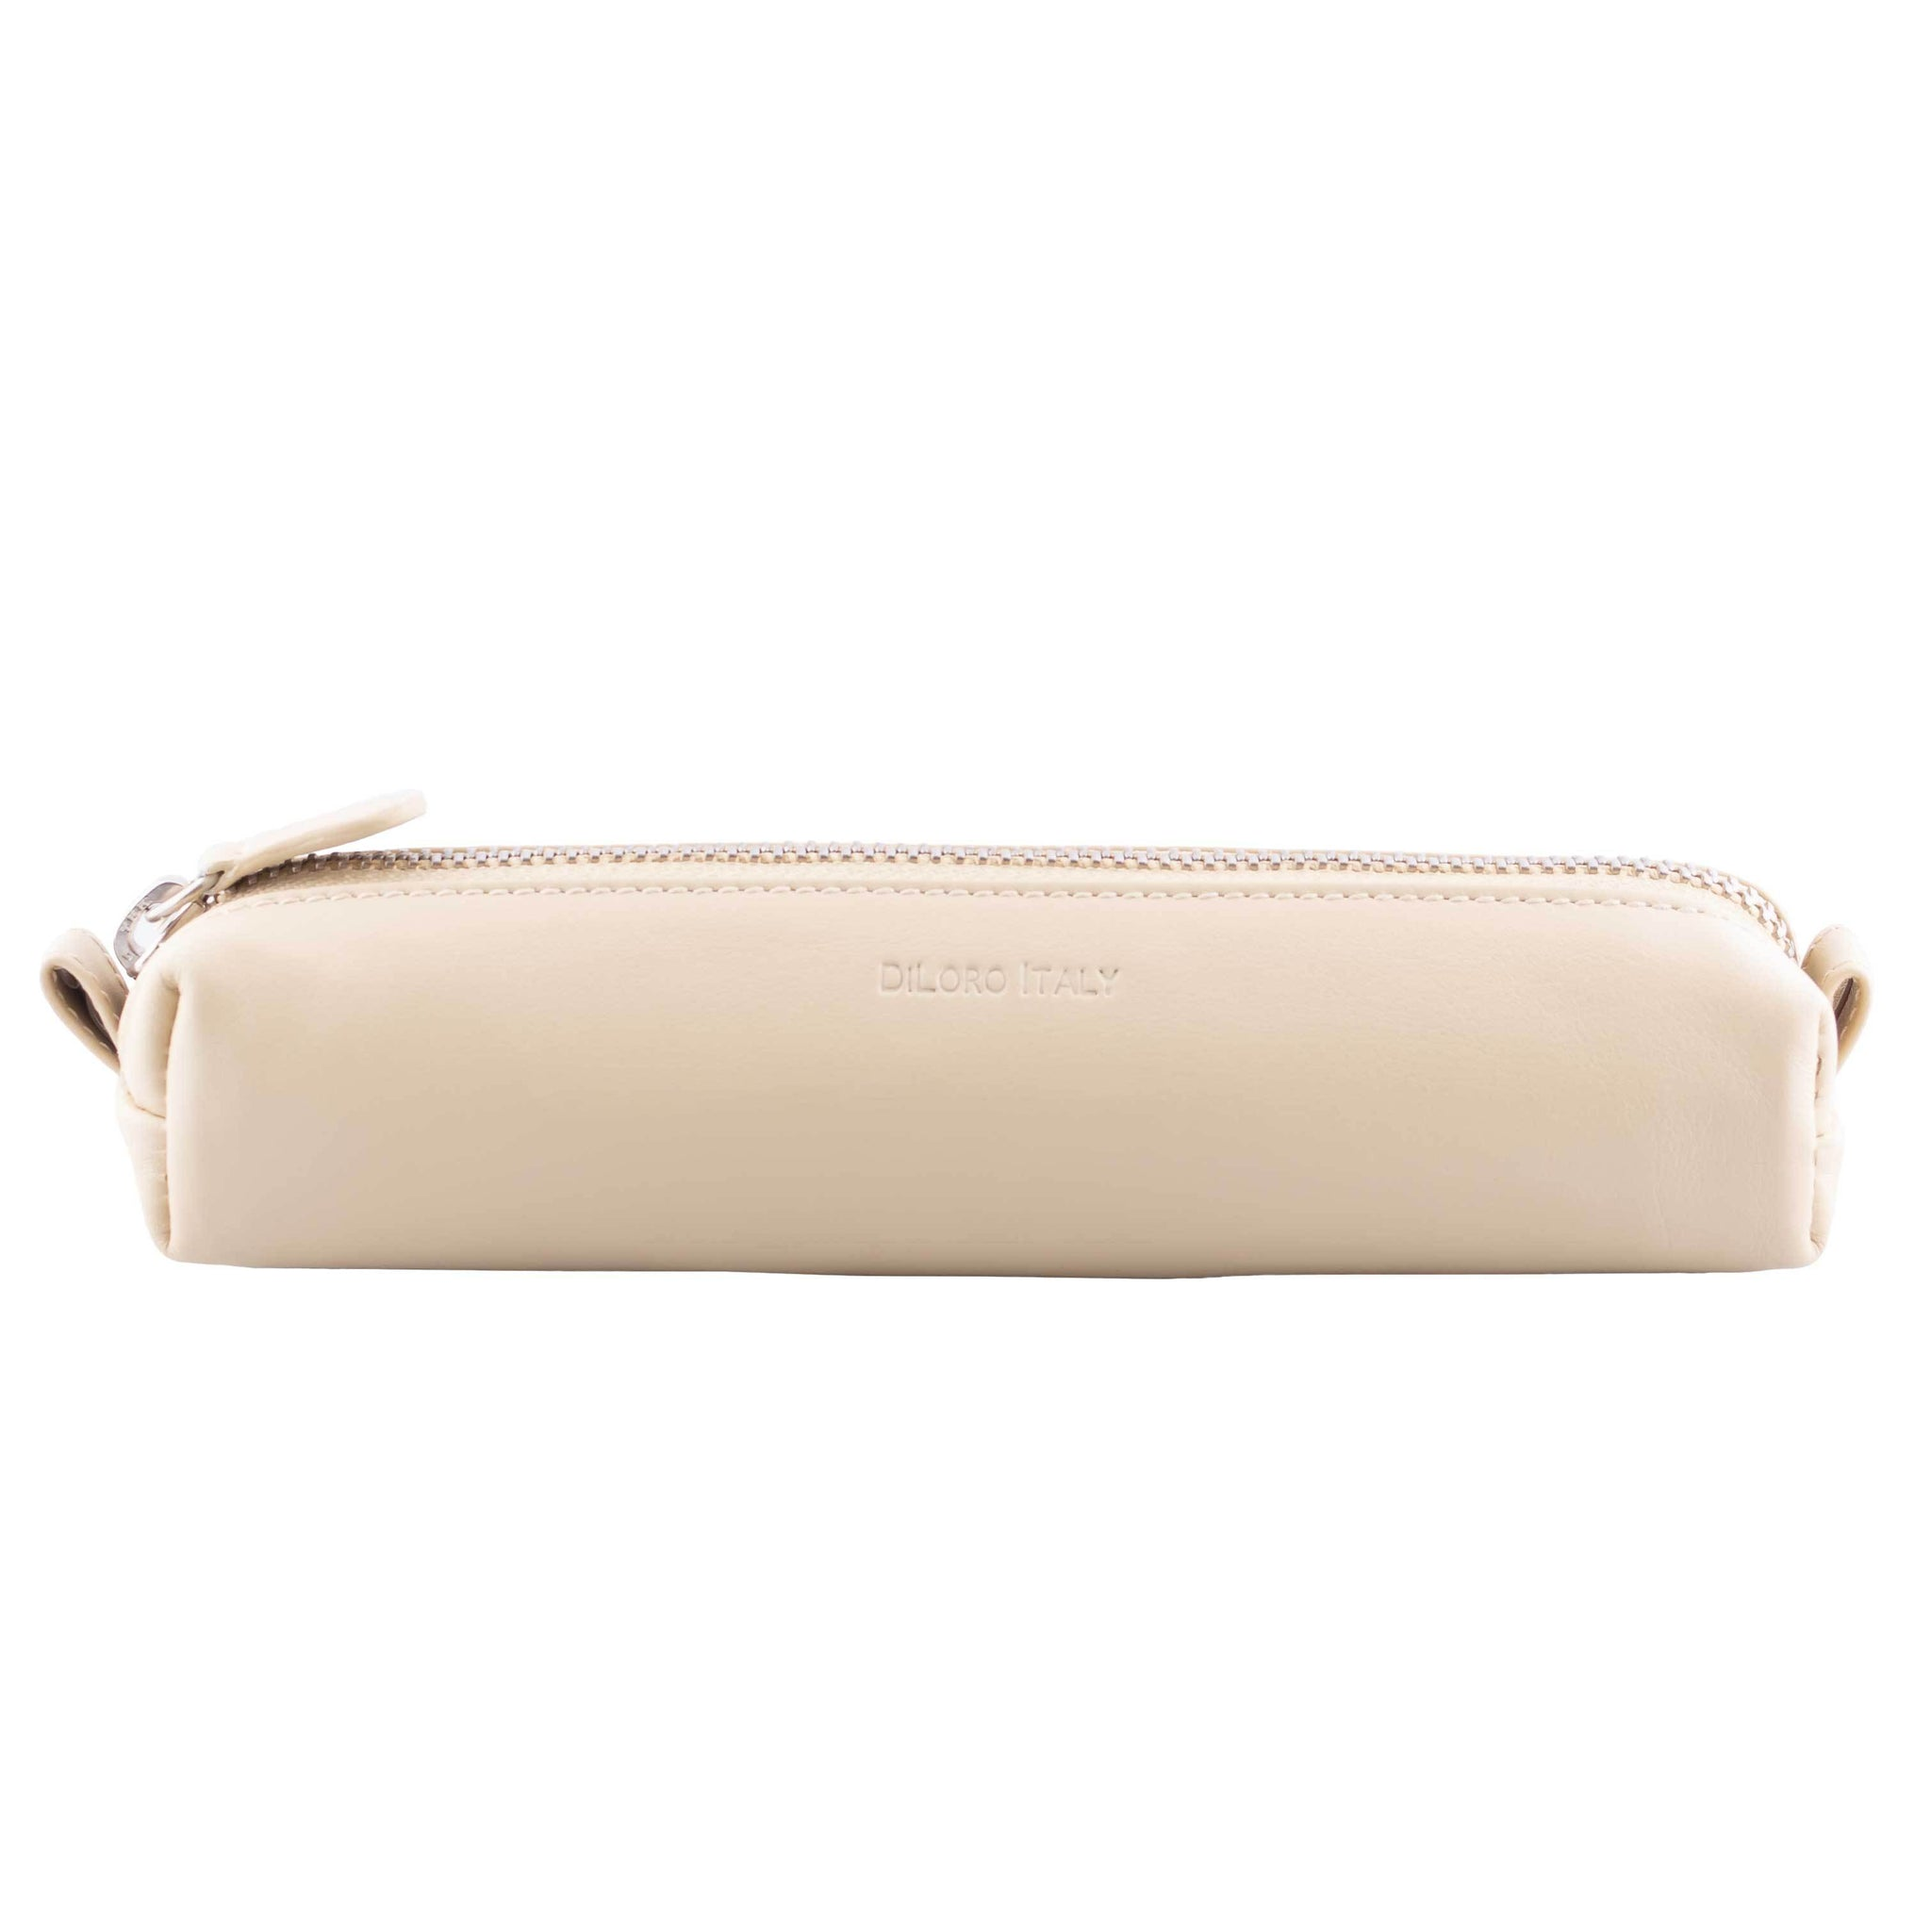 Multi-Purpose Zippered Leather Pen Pencil Case in Various Colors - Beige